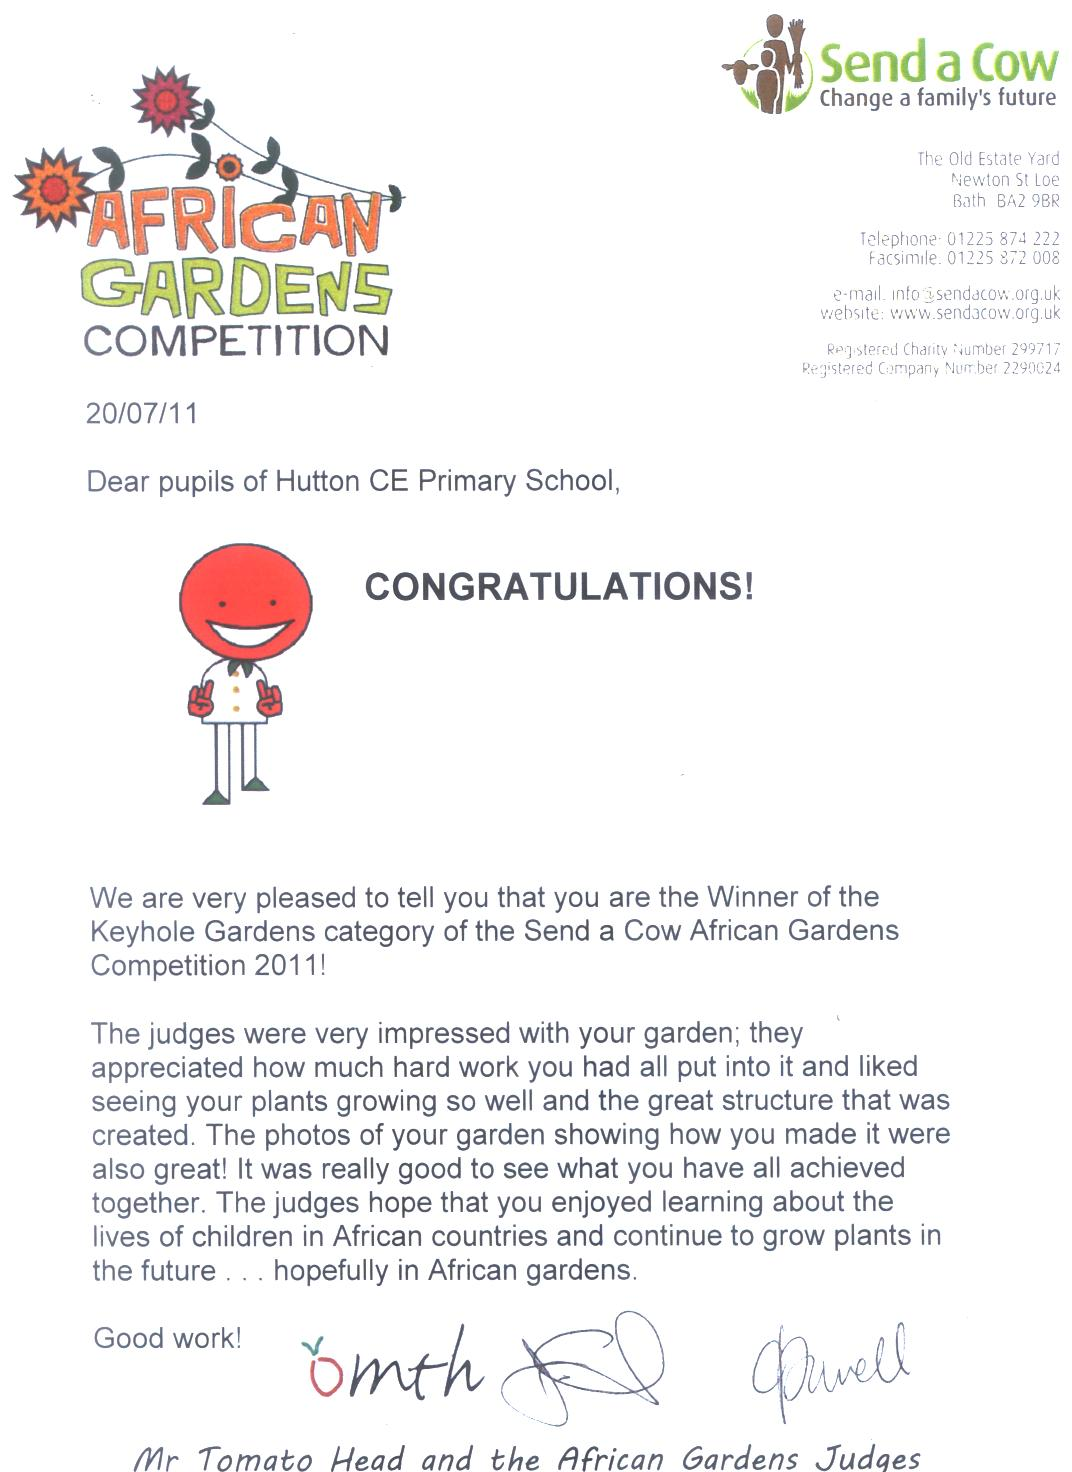 Competition letter | Hutton Church of England Primary School